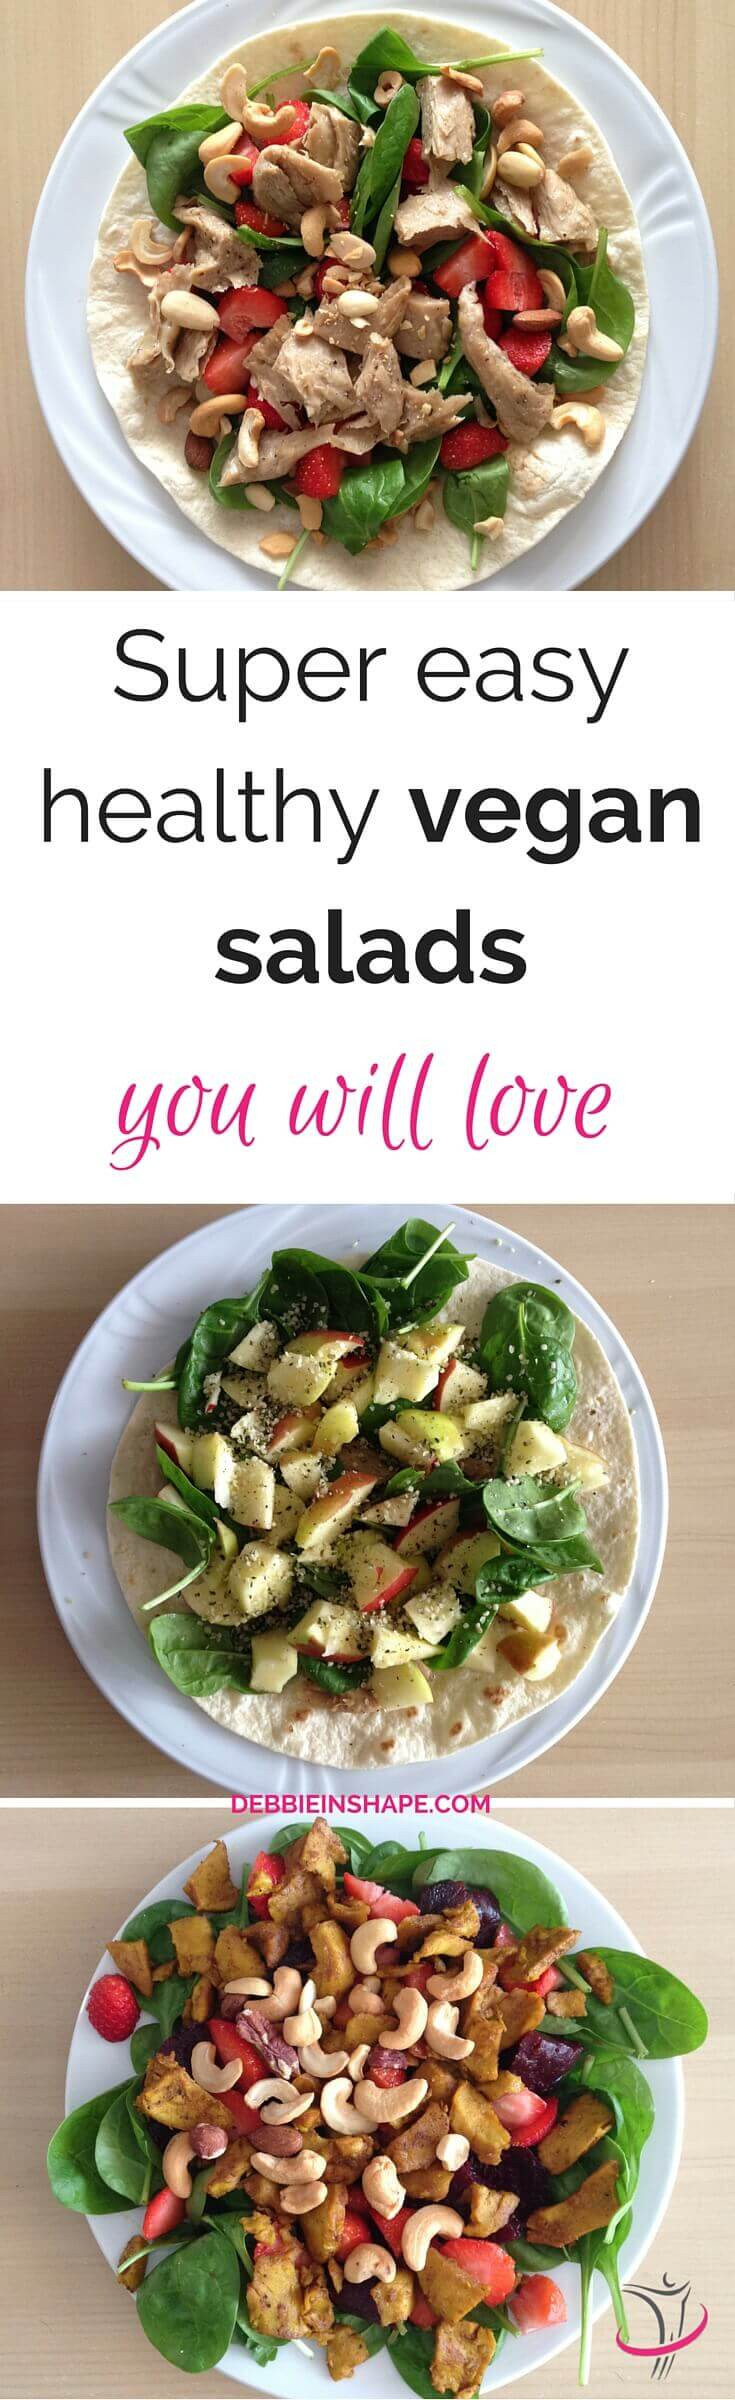 Super Healthy Vegetarian Recipes  Super Easy Healthy Vegan Salads You Will Love Debbie